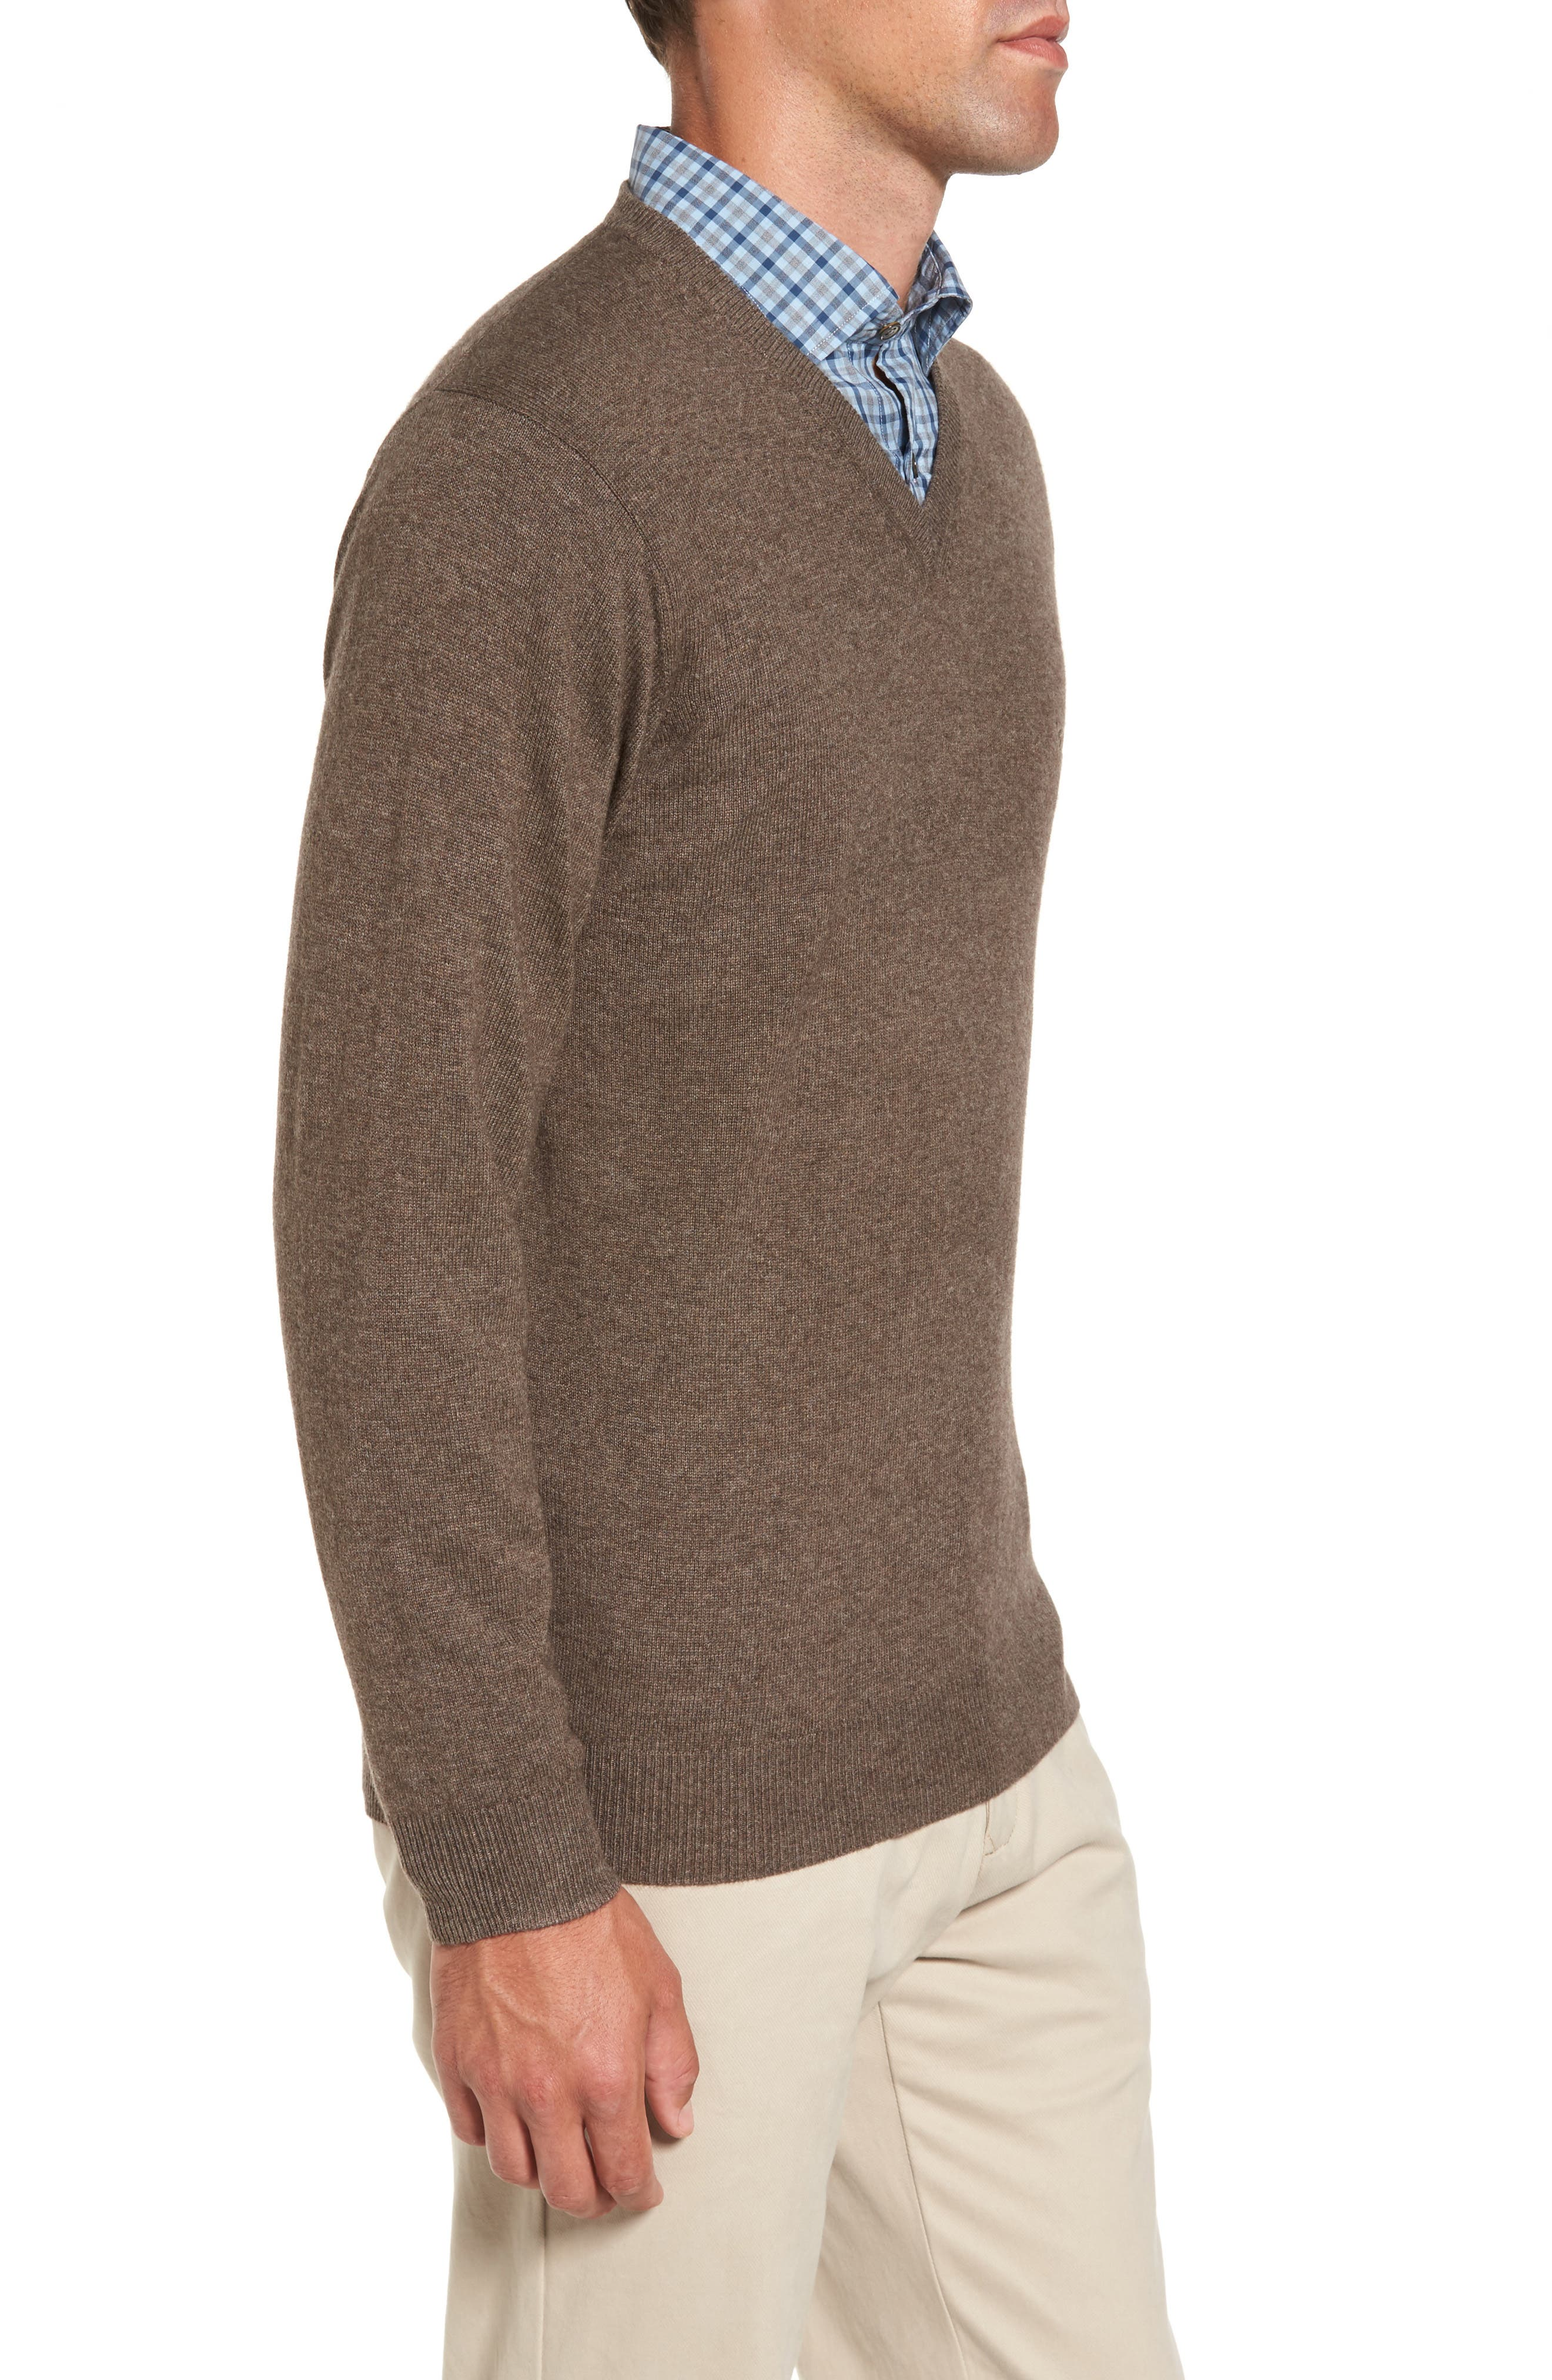 'Inchbonnie' Wool & Cashmere V-Neck Sweater,                             Alternate thumbnail 3, color,                             218